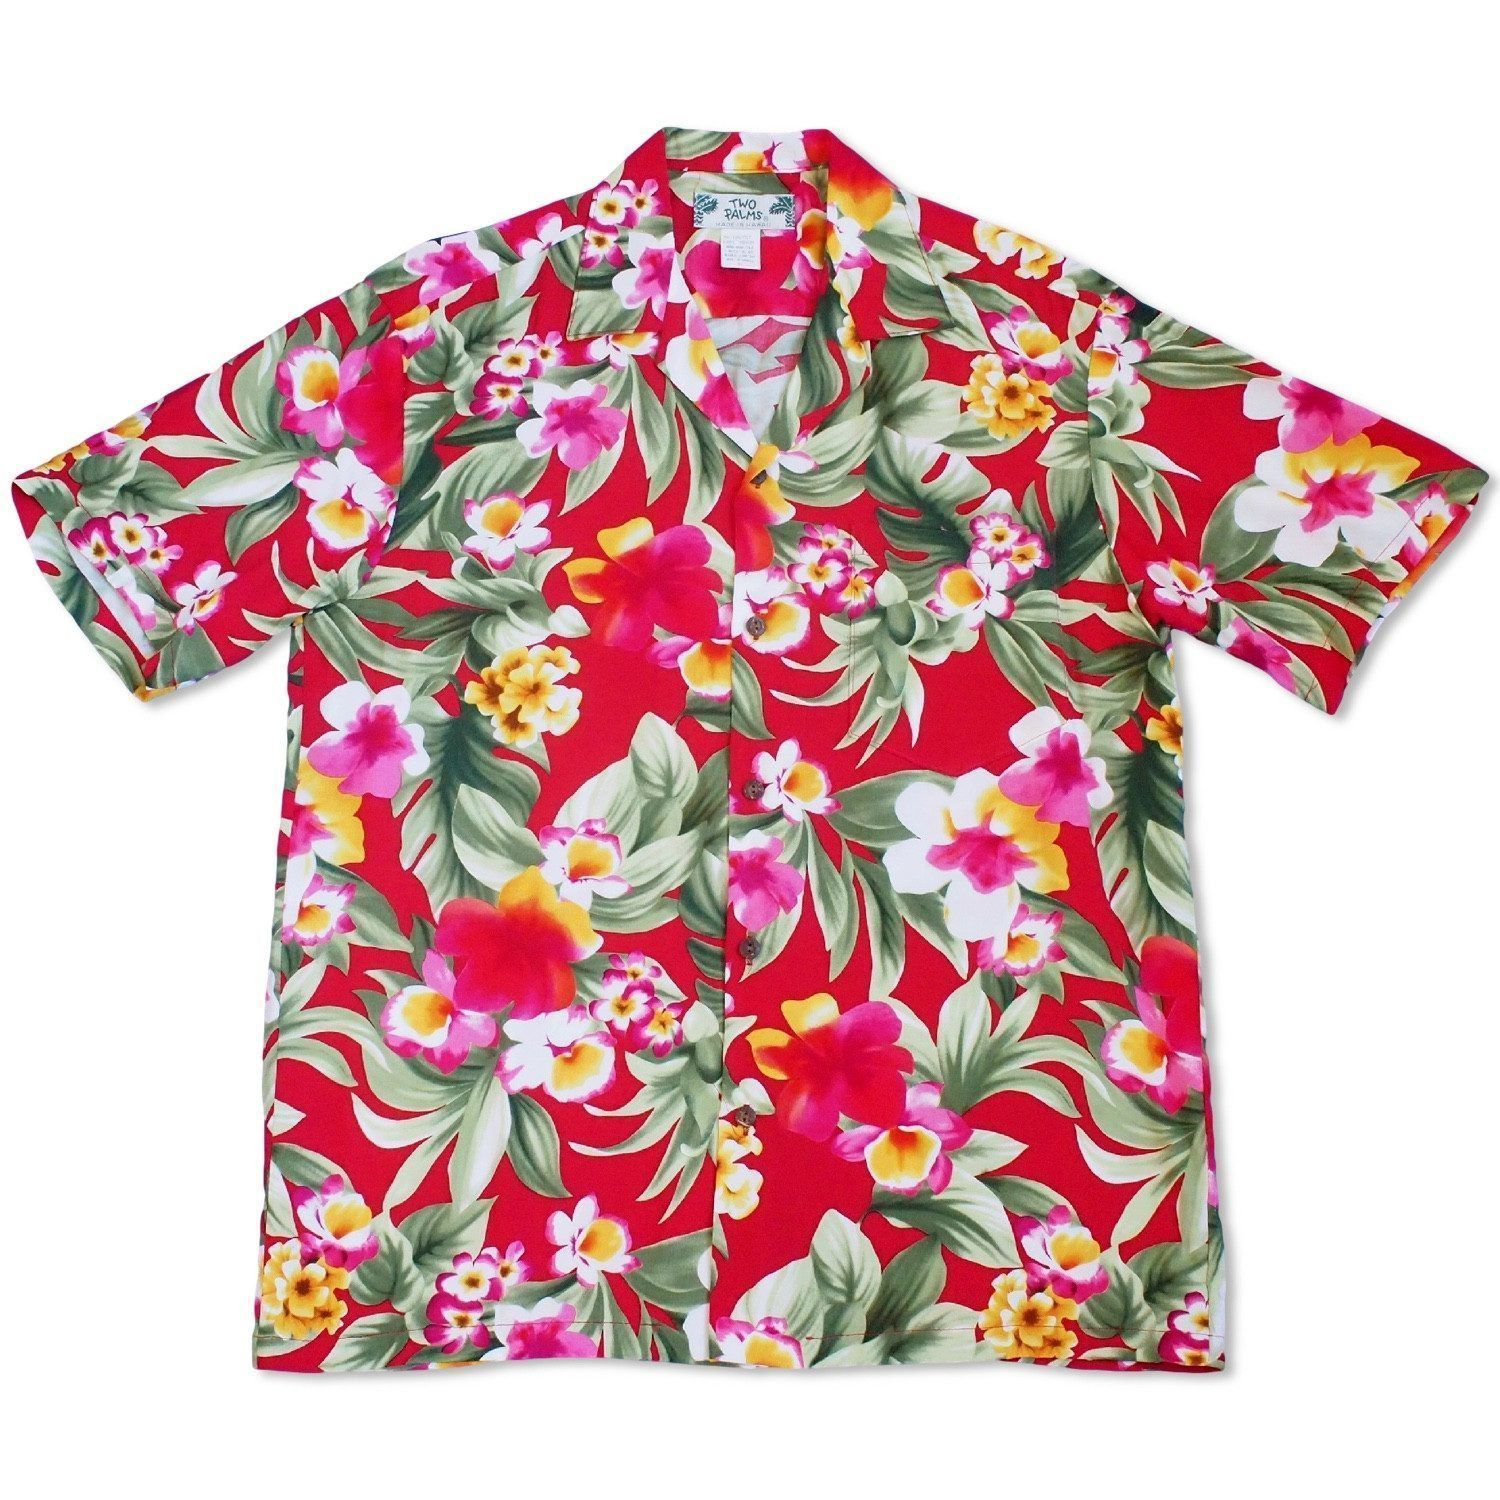 Oasis Red Hawaiian Rayon Shirt Man Pinterest Hawaiian And